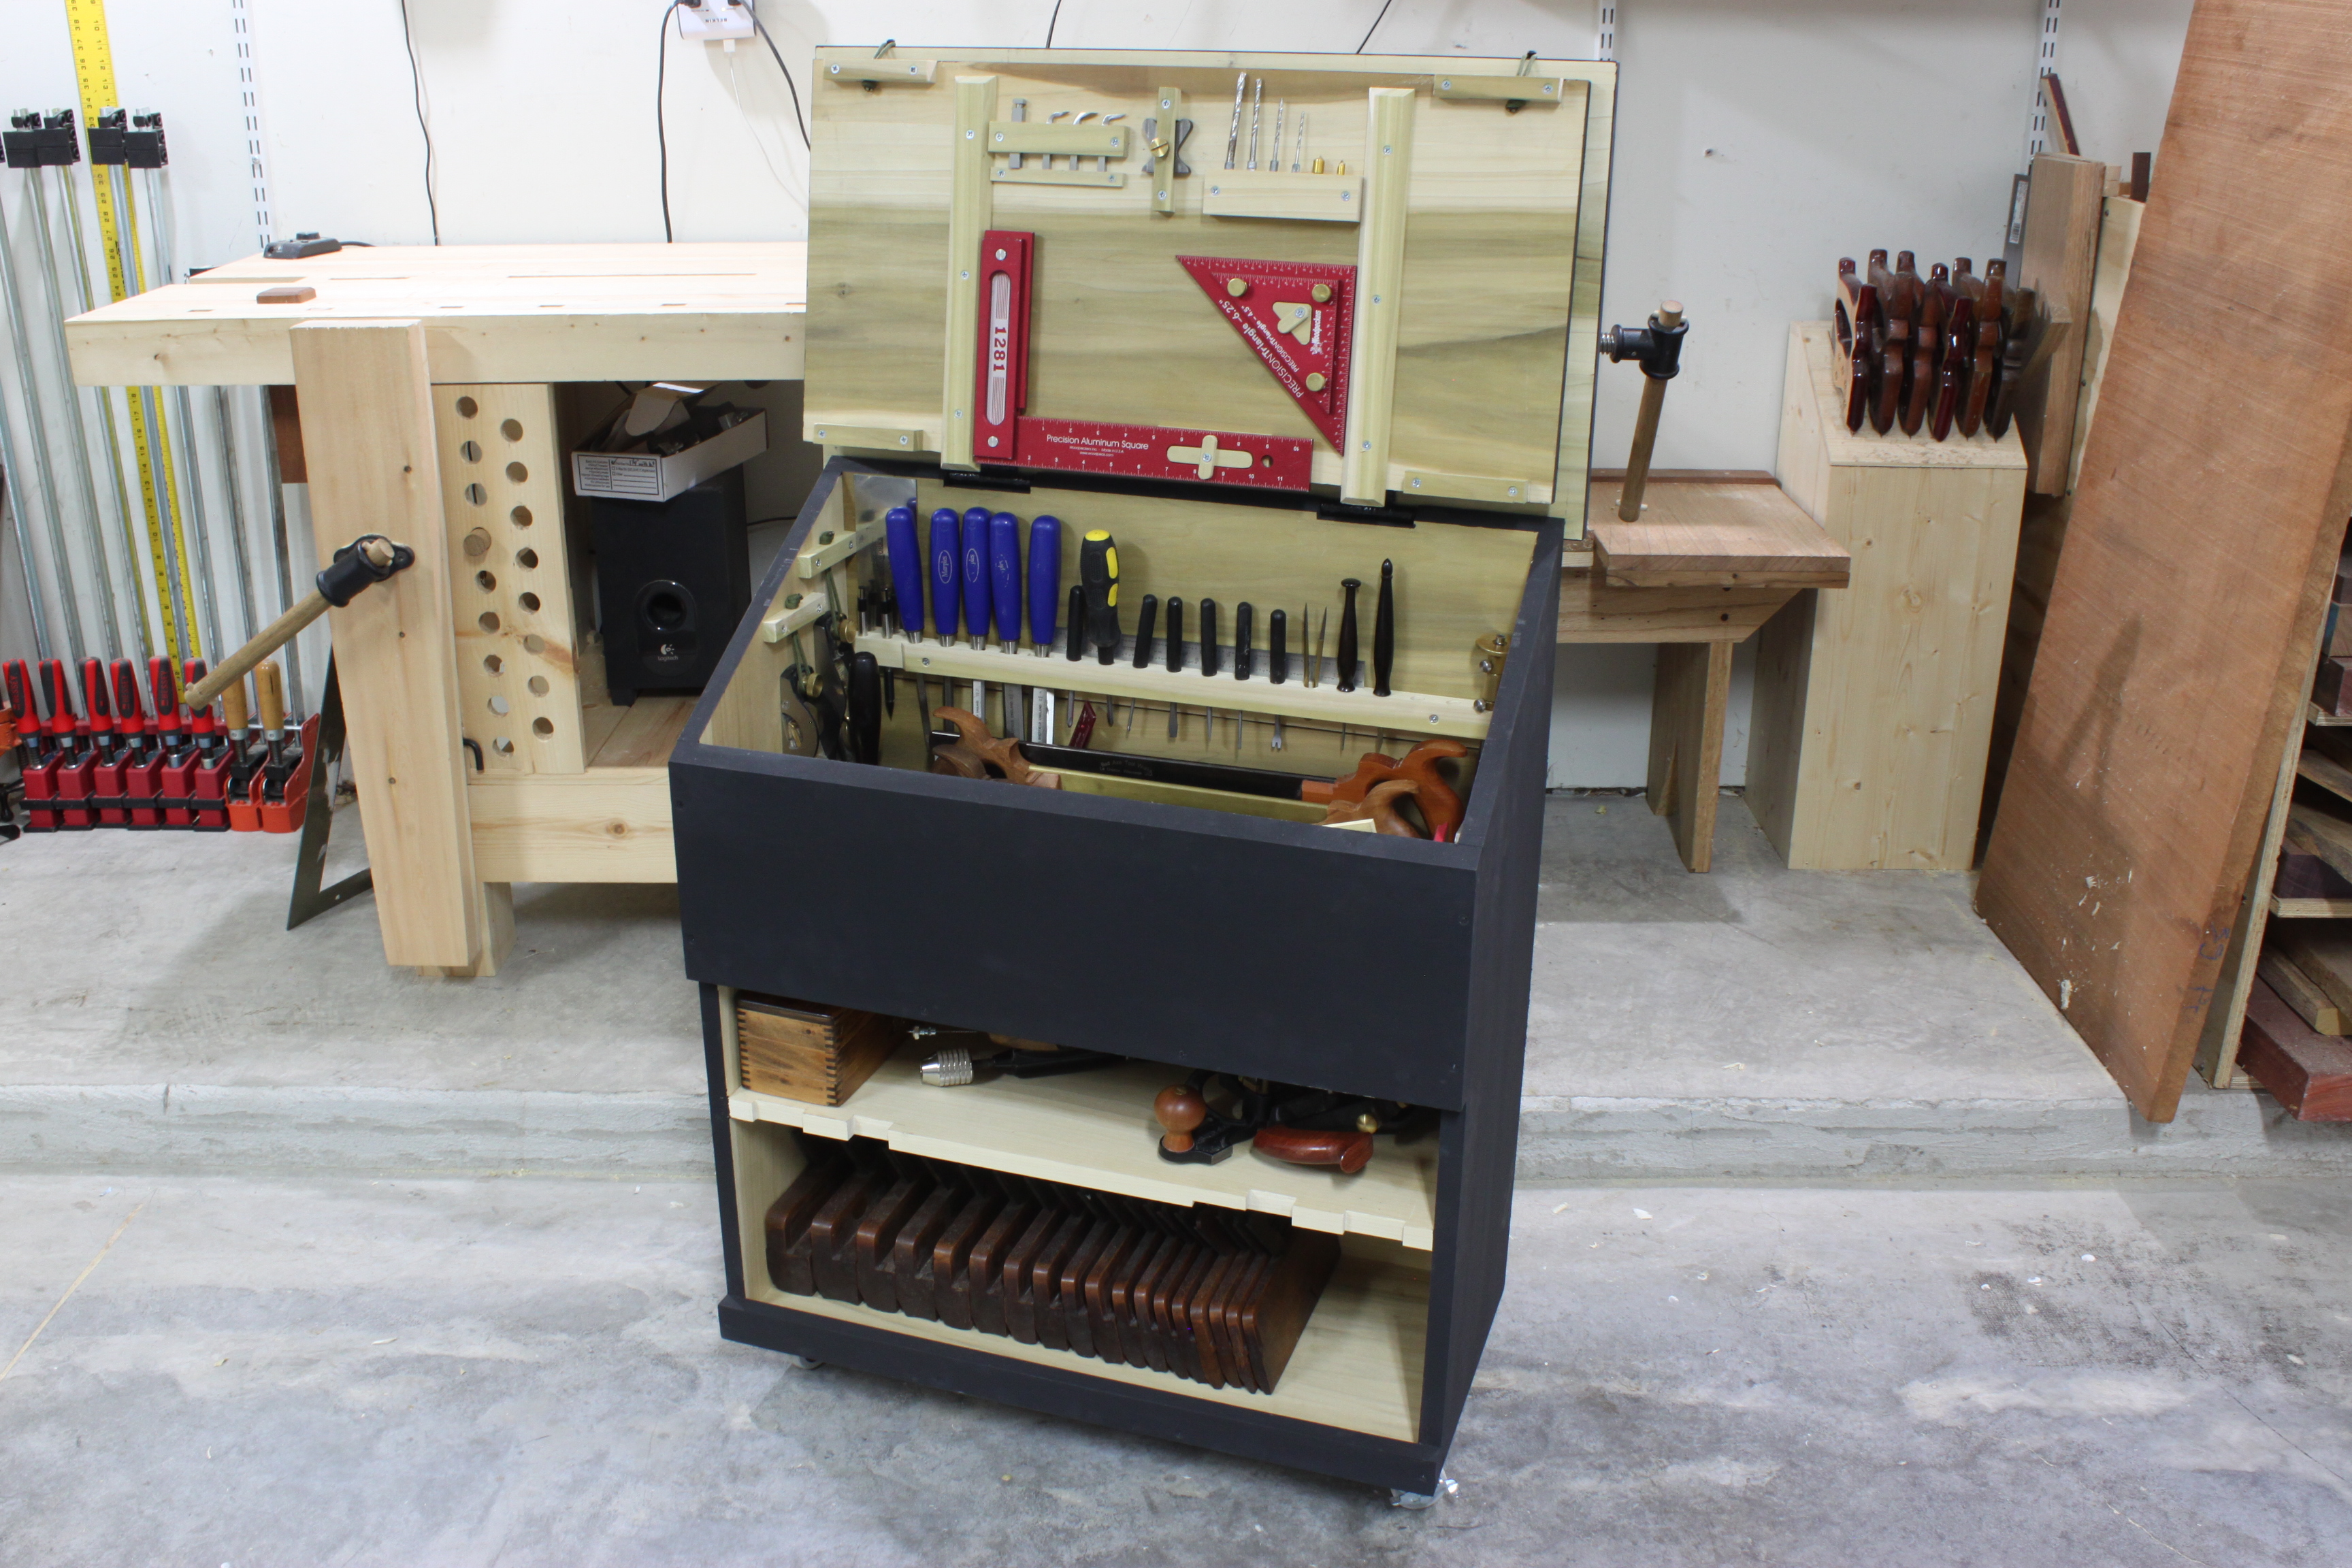 Killer Ideas To Organize Your Workshop Now also 506443920567936572 also Dutch Tool Chest likewise Diy together with Ideas To Inspire Your New Basement Workshop. on woodworking workshop layout